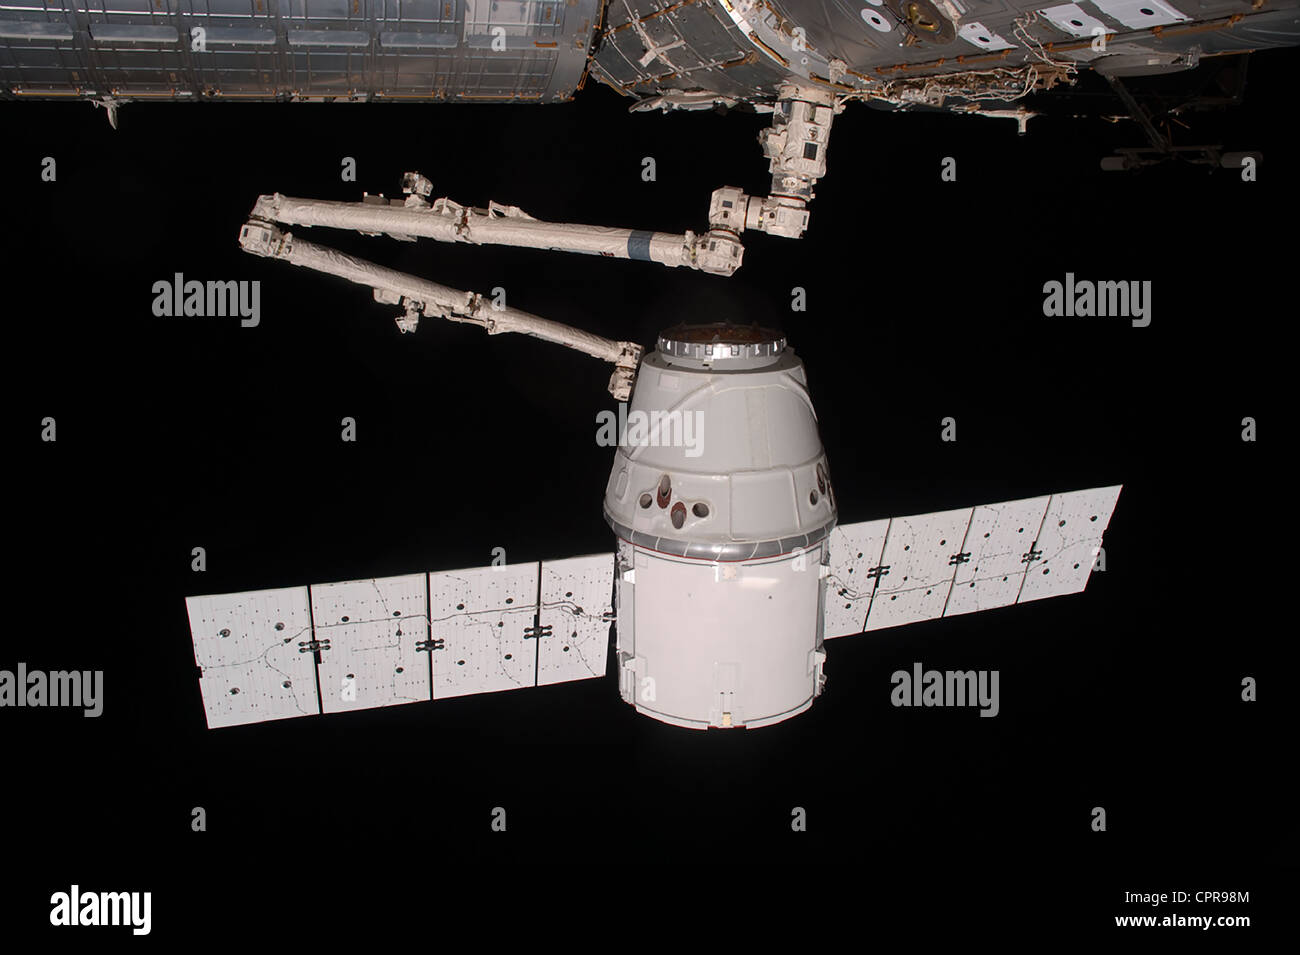 The SpaceX Dragon commercial cargo craft is grappled by the robotic arm at the International Space Station May 25, - Stock Image